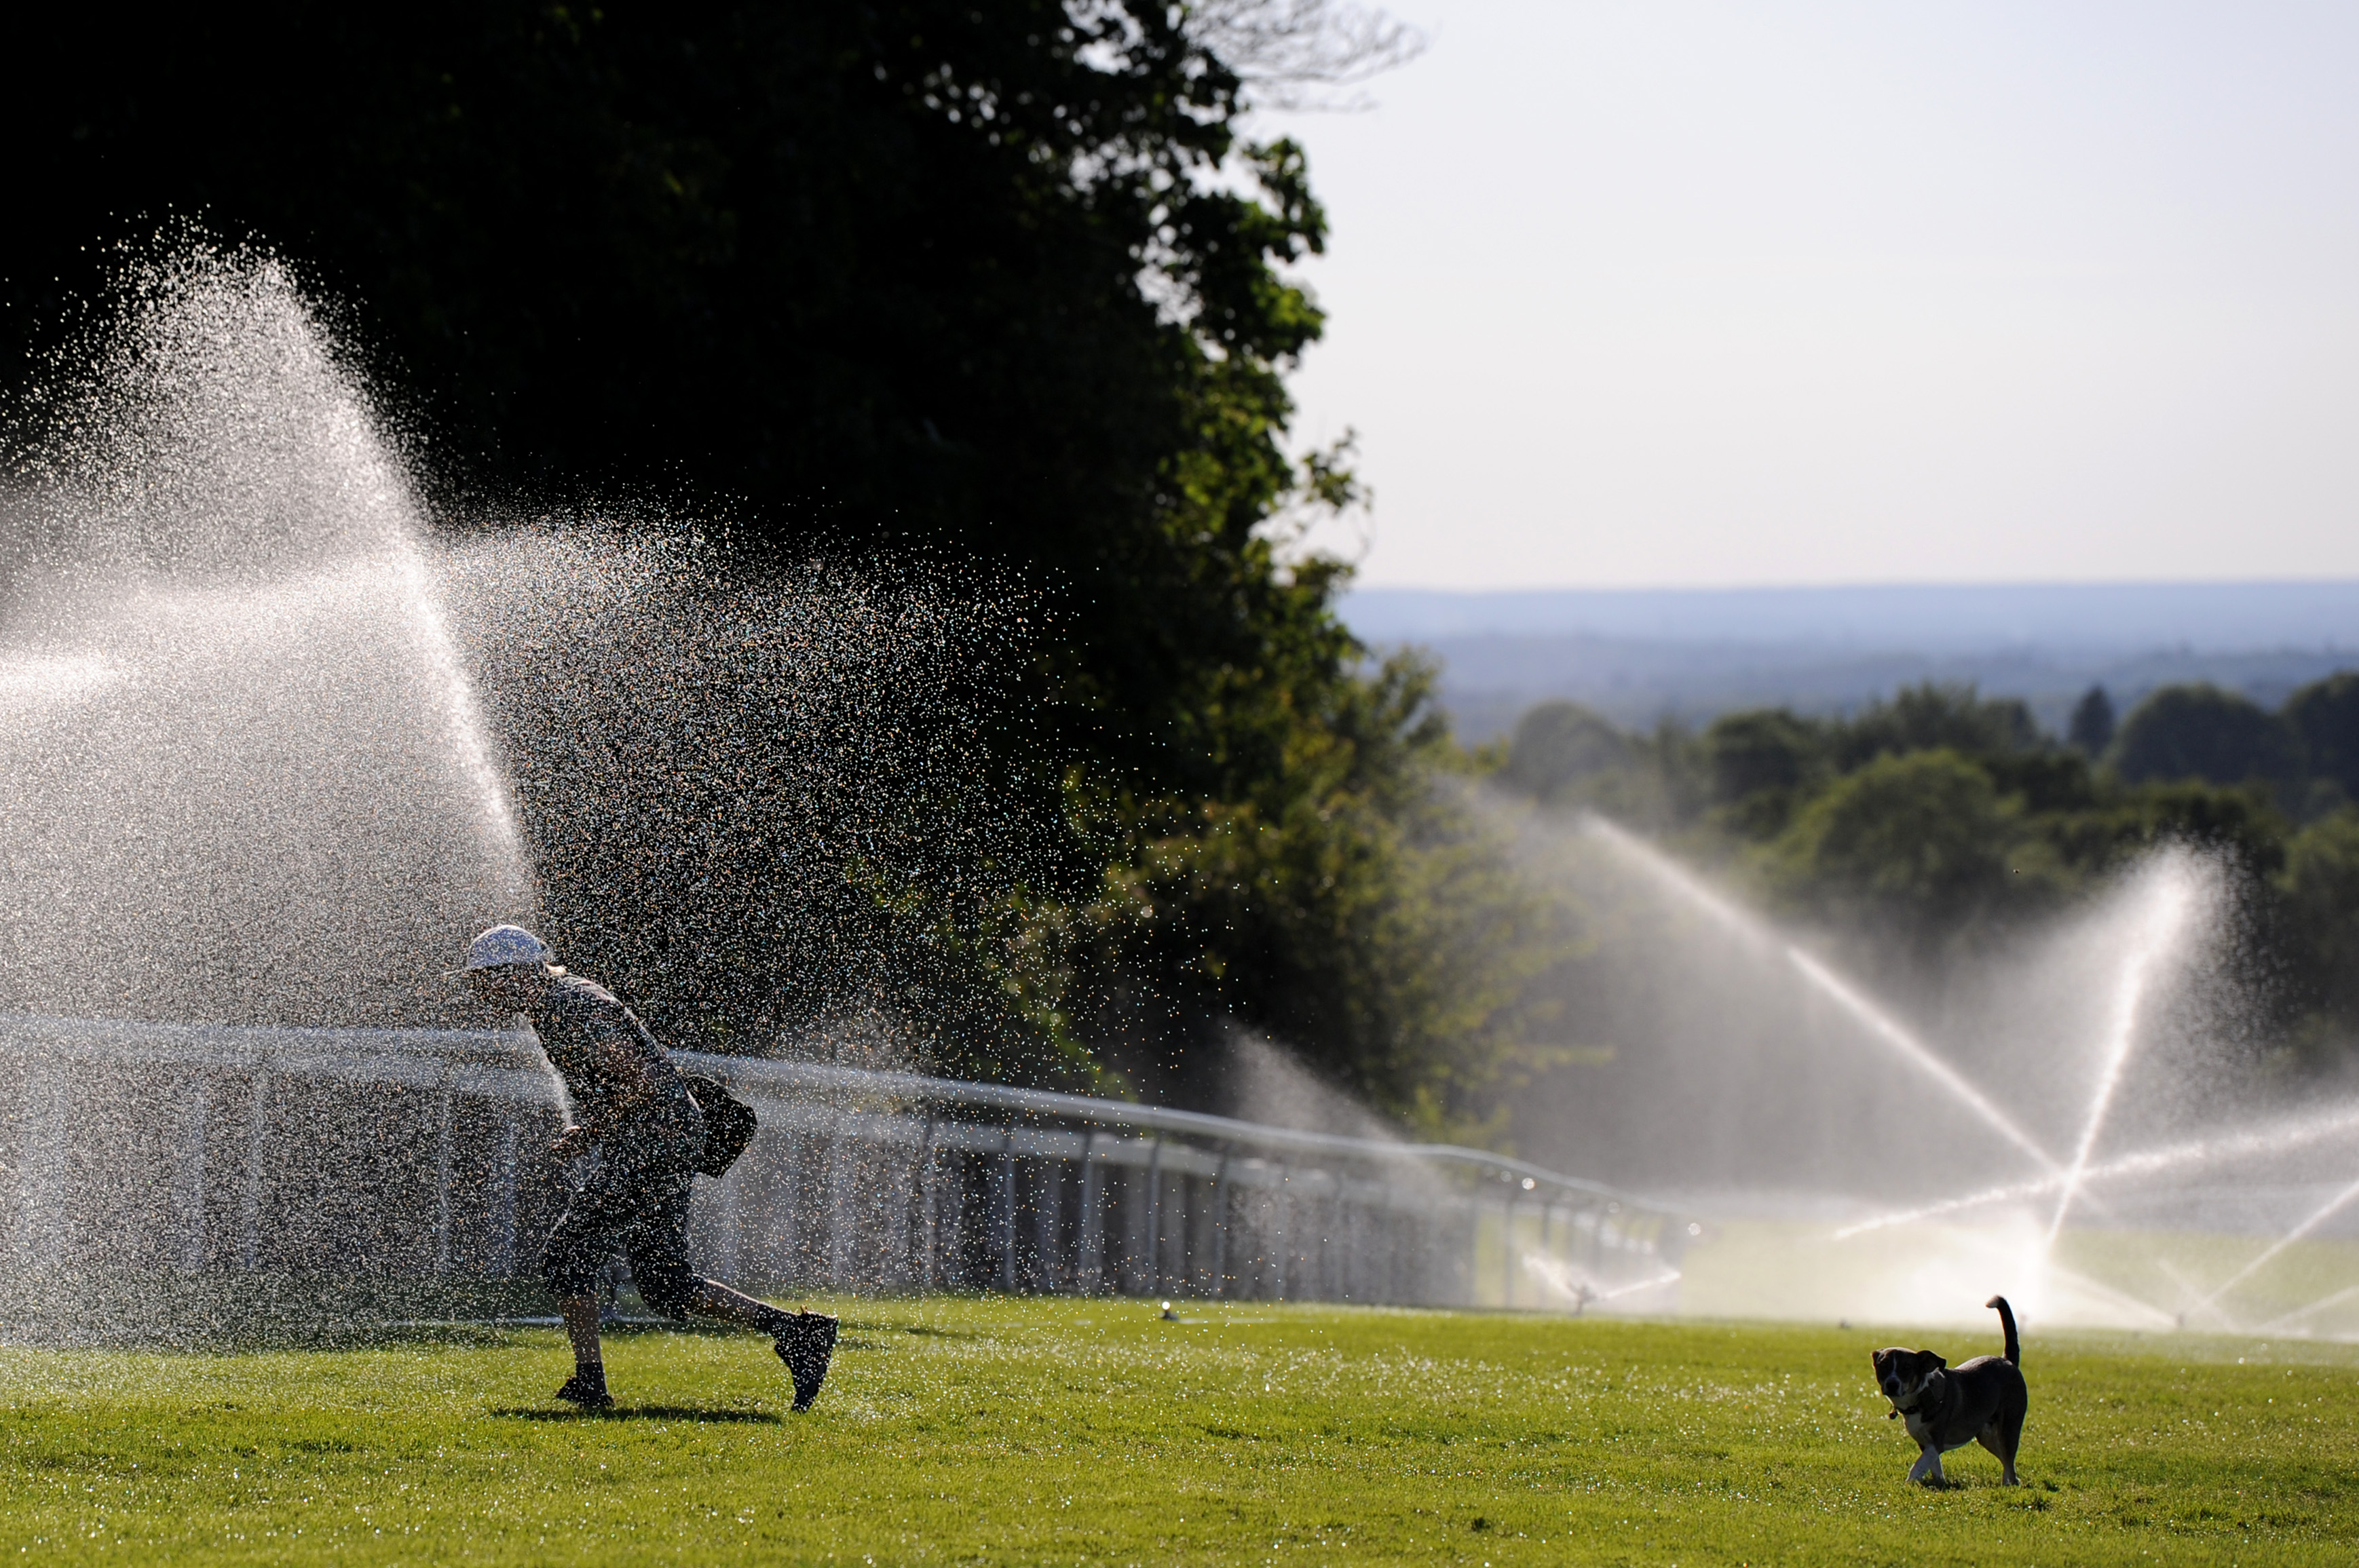 EPSOM, ENGLAND - JUNE 02: A person and a dog walk past sprinklers as they cross the course at Epsom Downs Racecourse on June 02, 2020 in Epsom, England. The British government further relaxed Covid-19 quarantine measures in England this week, allowing groups of six people from different households to meet in parks and gardens, subject to social distancing rules. Many schools also reopened and vulnerable people who are shielding in their homes are allowed to go outside again. (Photo by Alex Burstow/Getty Images)